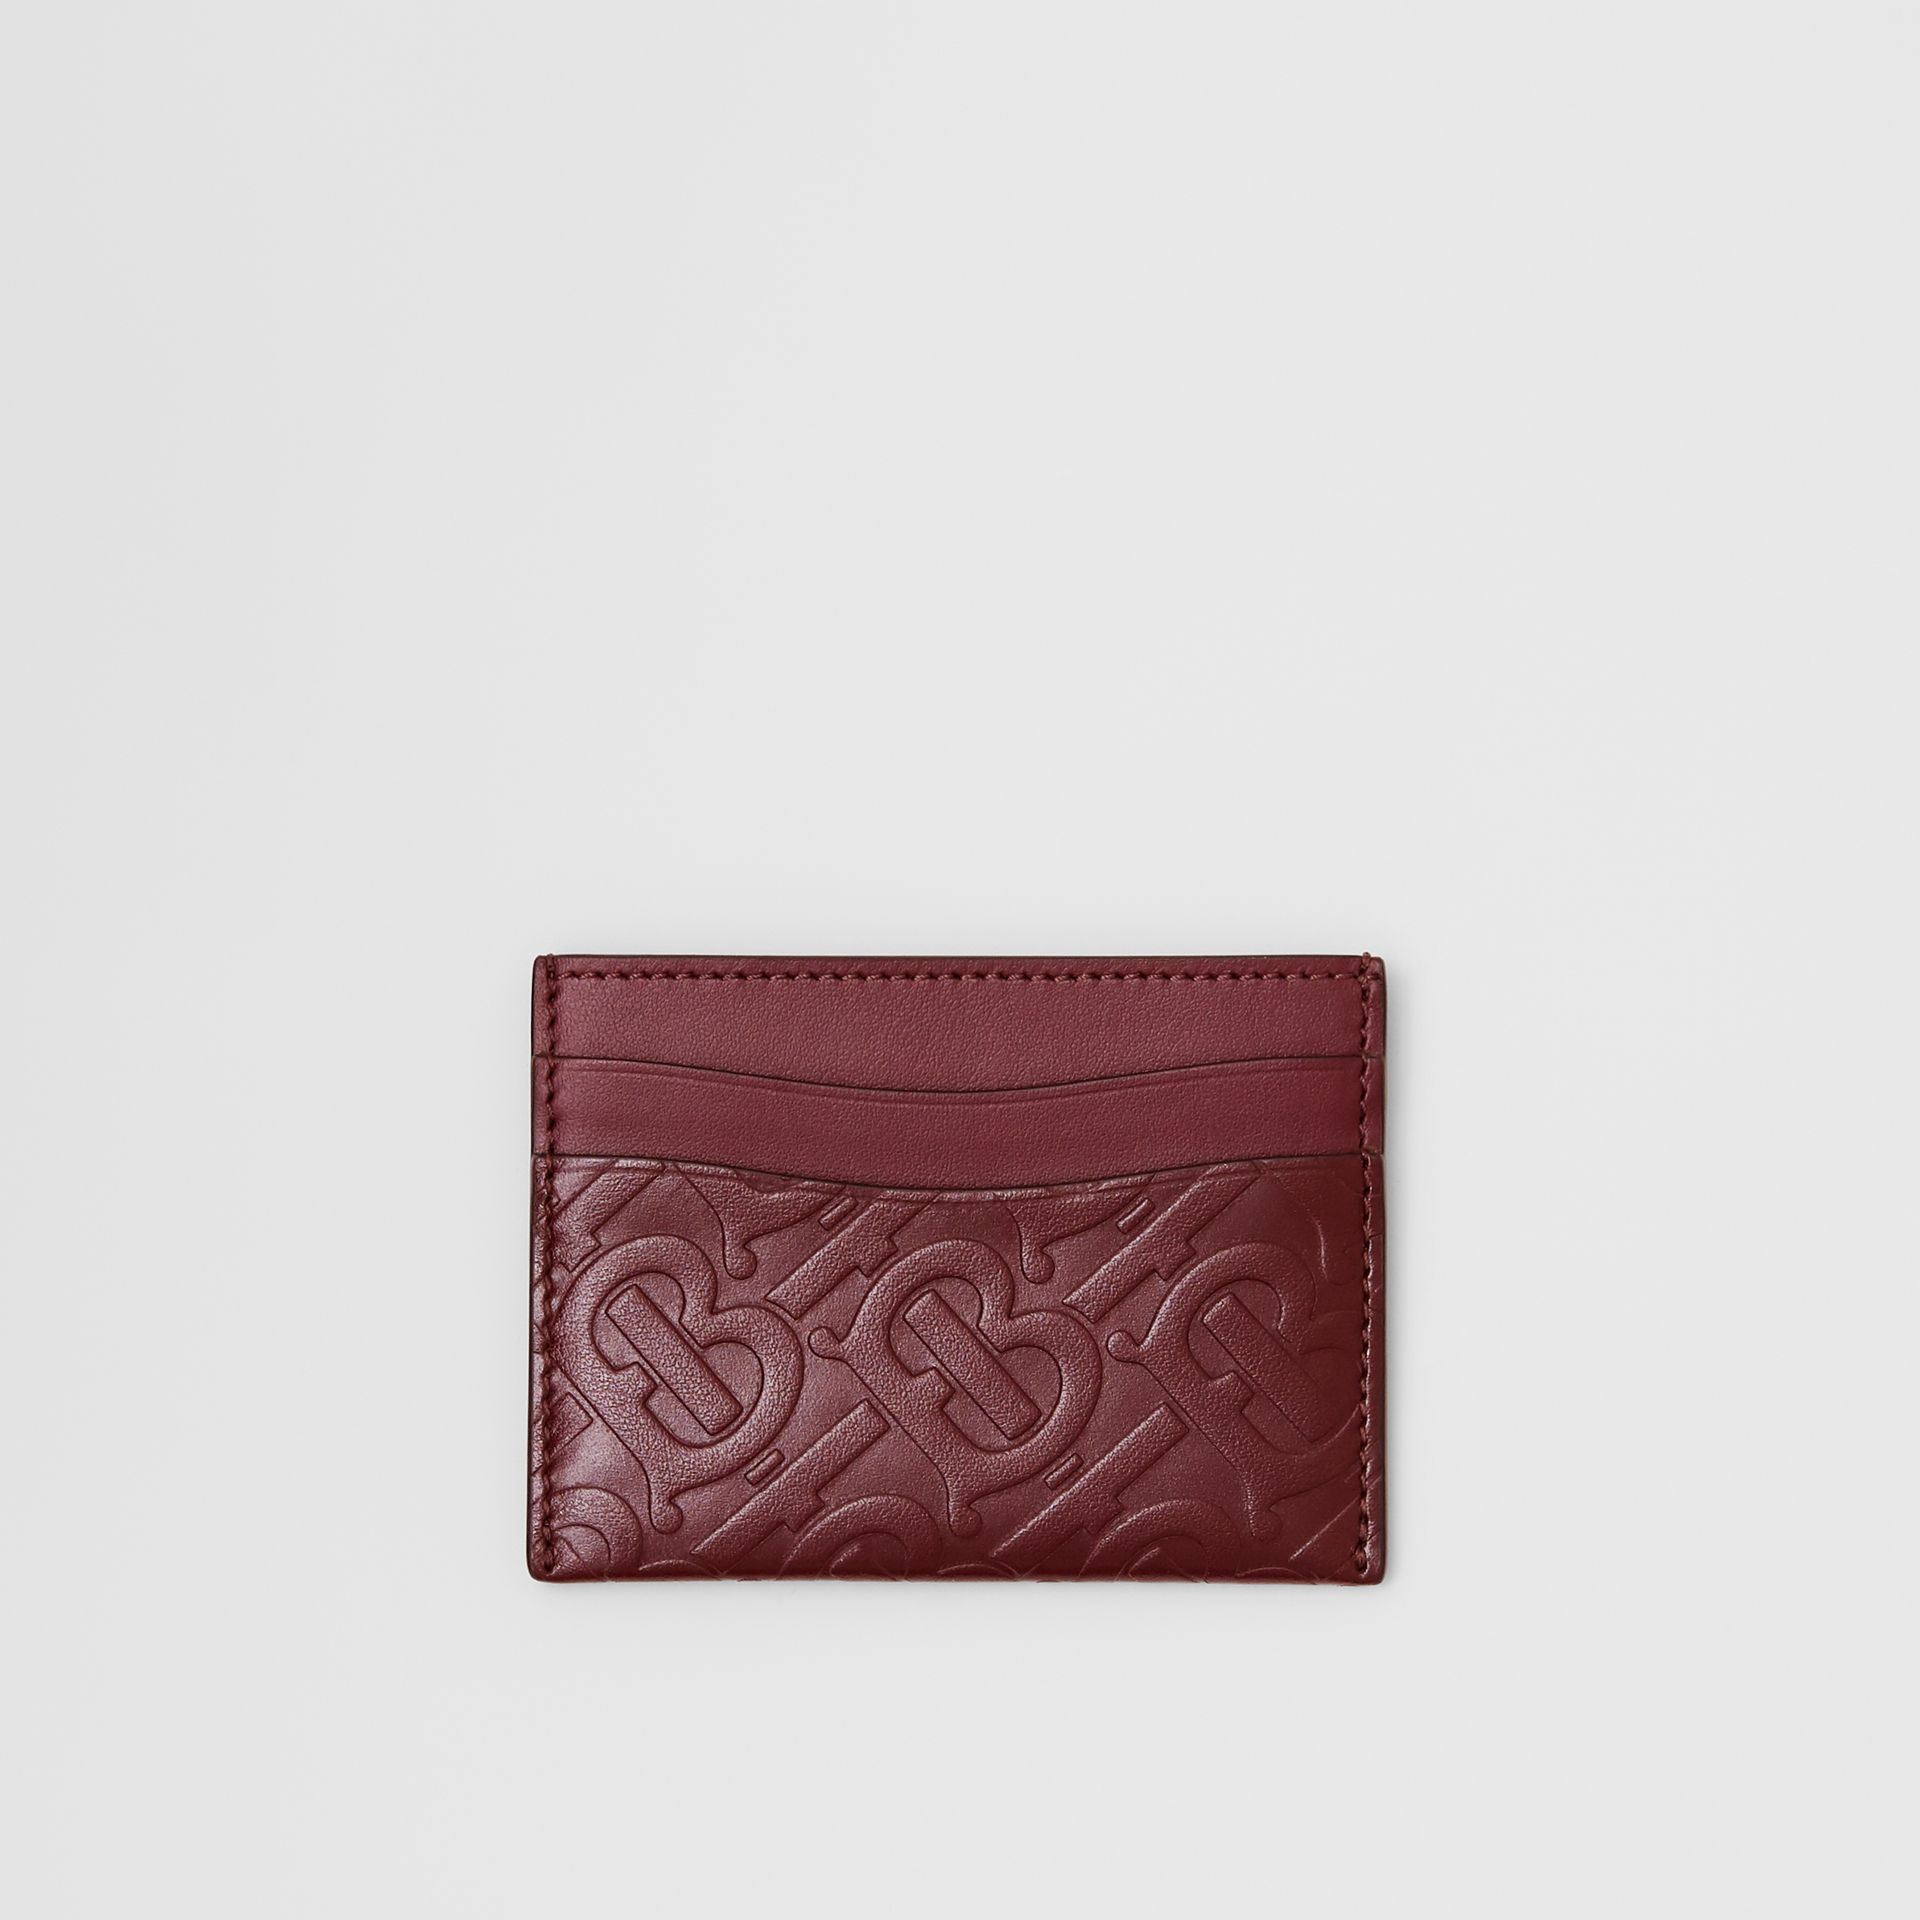 Porte-cartes en cuir Monogram (Oxblood) - Femme | Burberry Canada - photo de la galerie 0